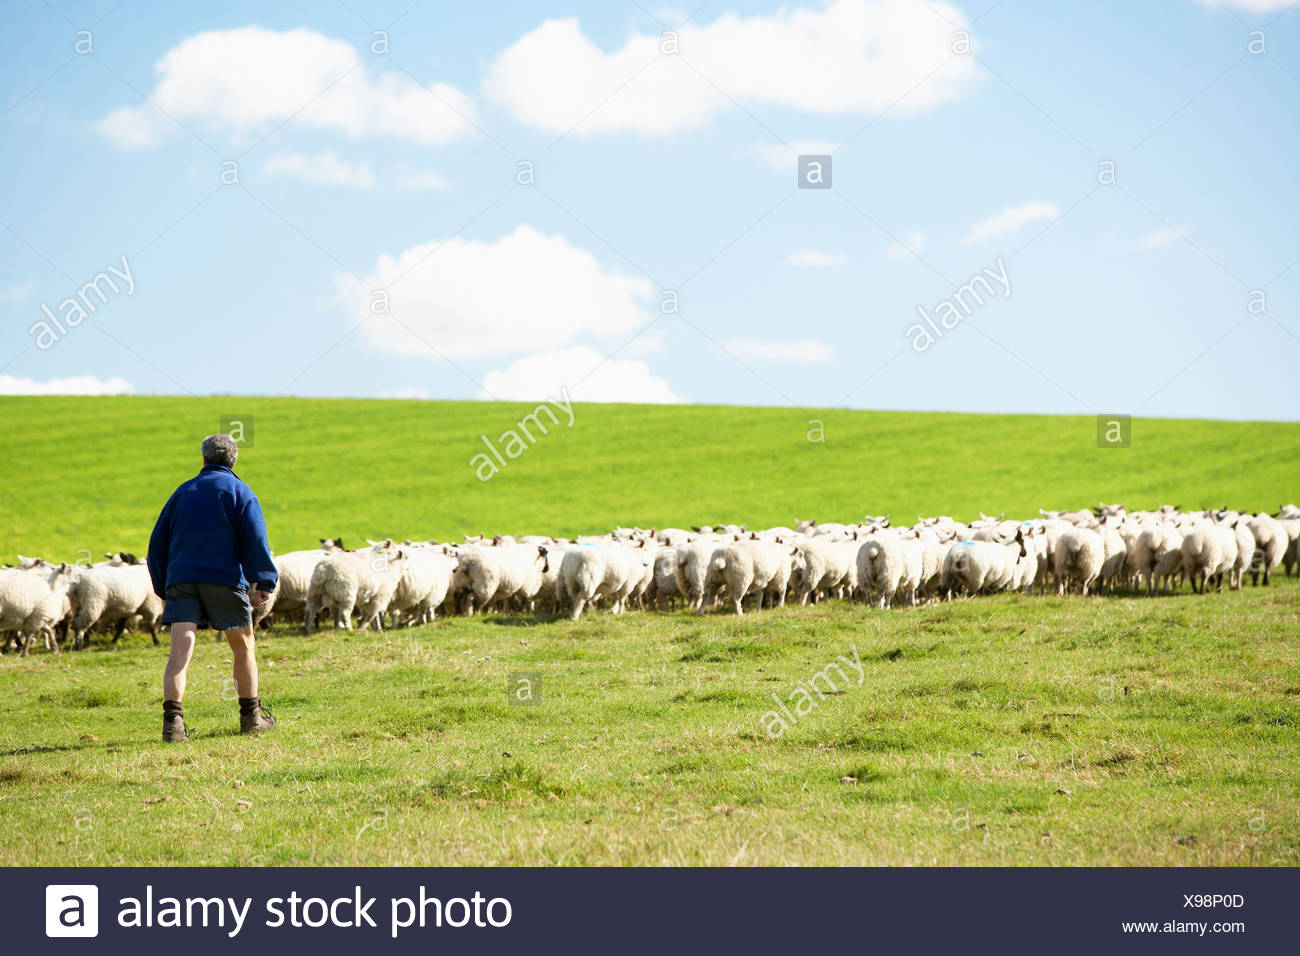 Farm Worker With Flock Of Sheep - Stock Image